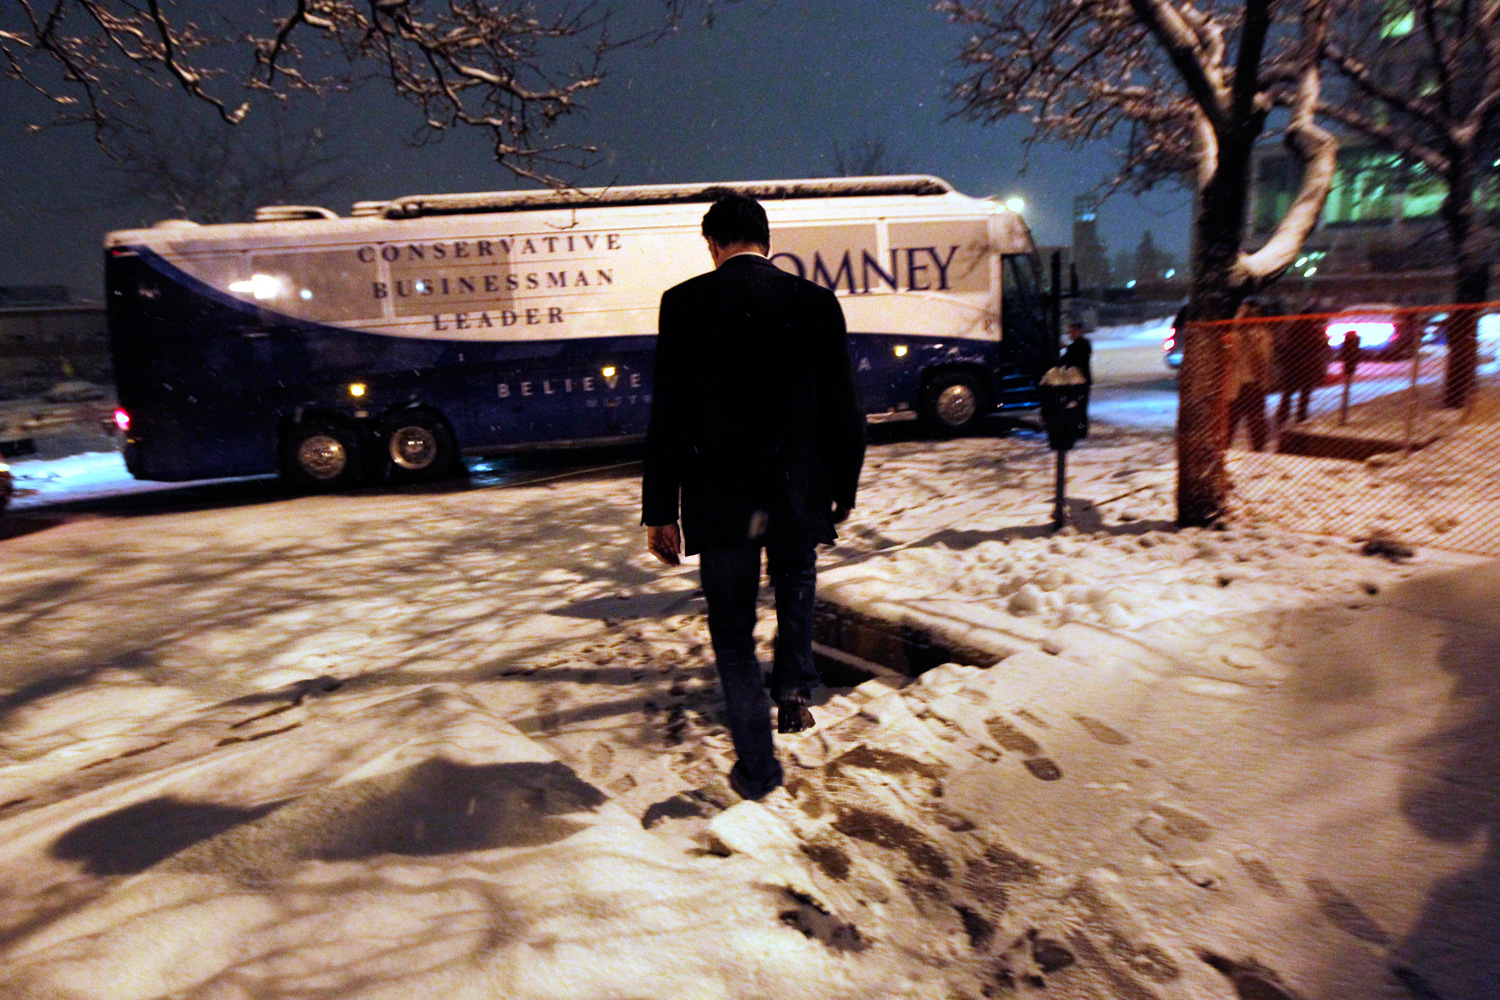 Feb. 24, 2012. Republican presidential candidate Mitt Romney walks to his campaign bus after speaking at a town hall meeting in Kalamazoo, Mich.